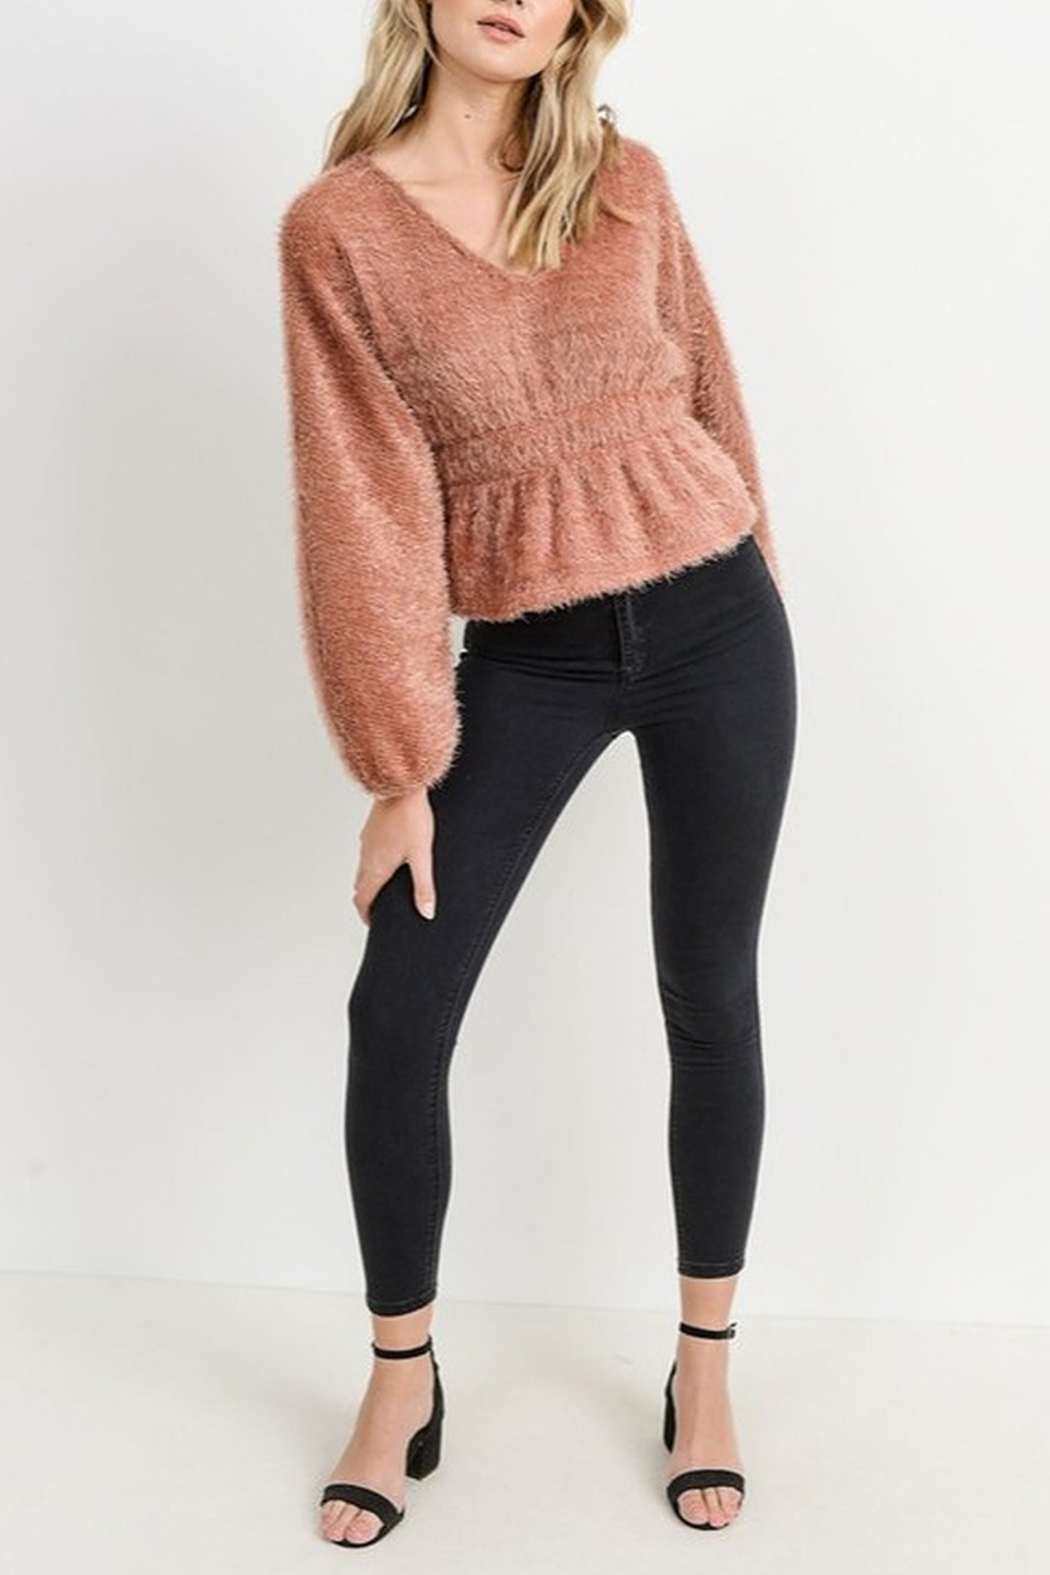 Papercrane Textured Dolman Sweater - Side Cropped Image